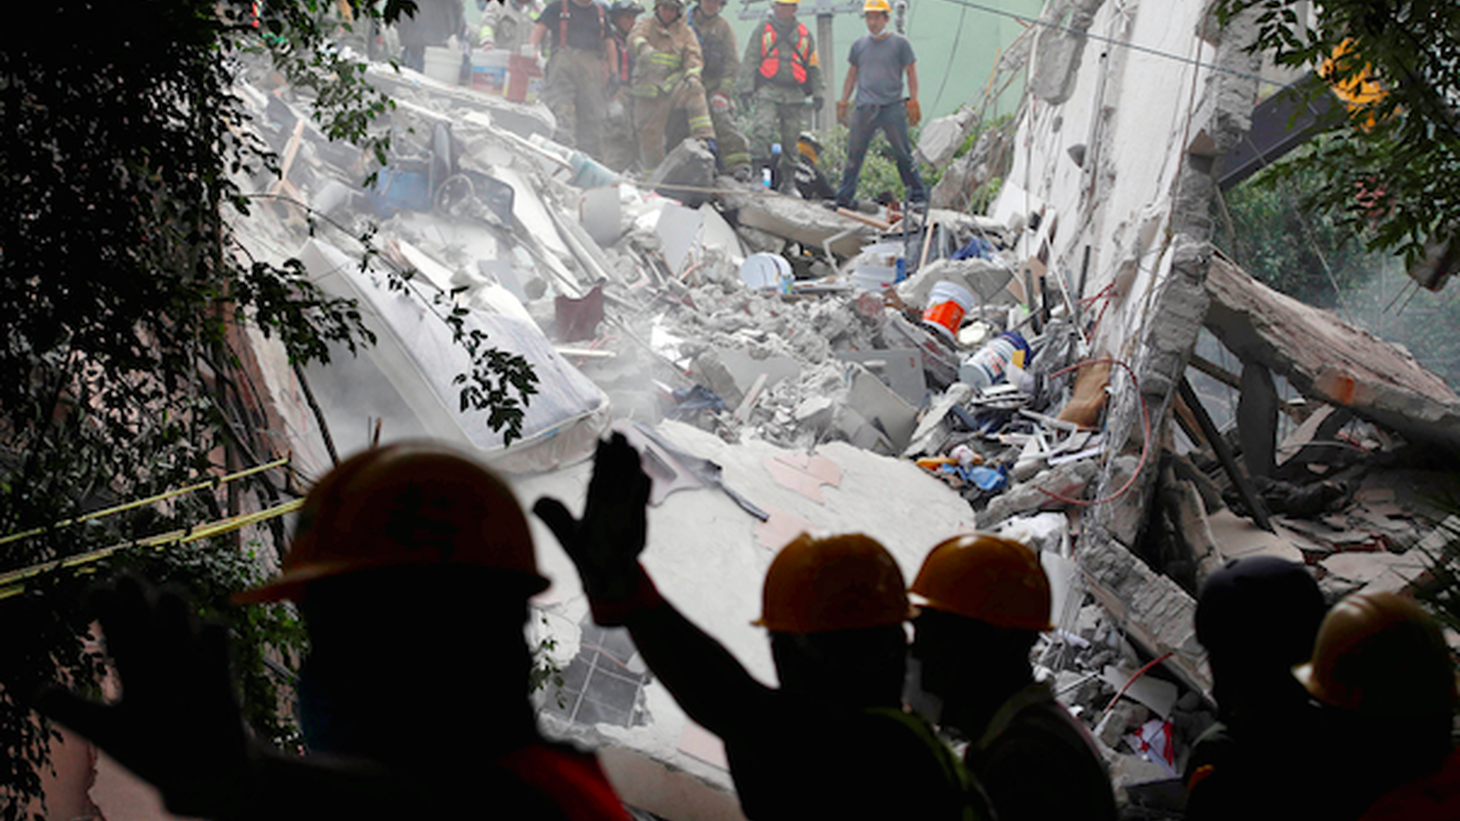 We get the latest from Mexico City on the 7.1 magnitude earthquake that struck yesterday, and the rescue efforts. Hundreds of people have died. Buildings collapsed. We look at why Mexico City is particularly vulnerable to destruction from earthquakes. And will California ever get an early warning system?